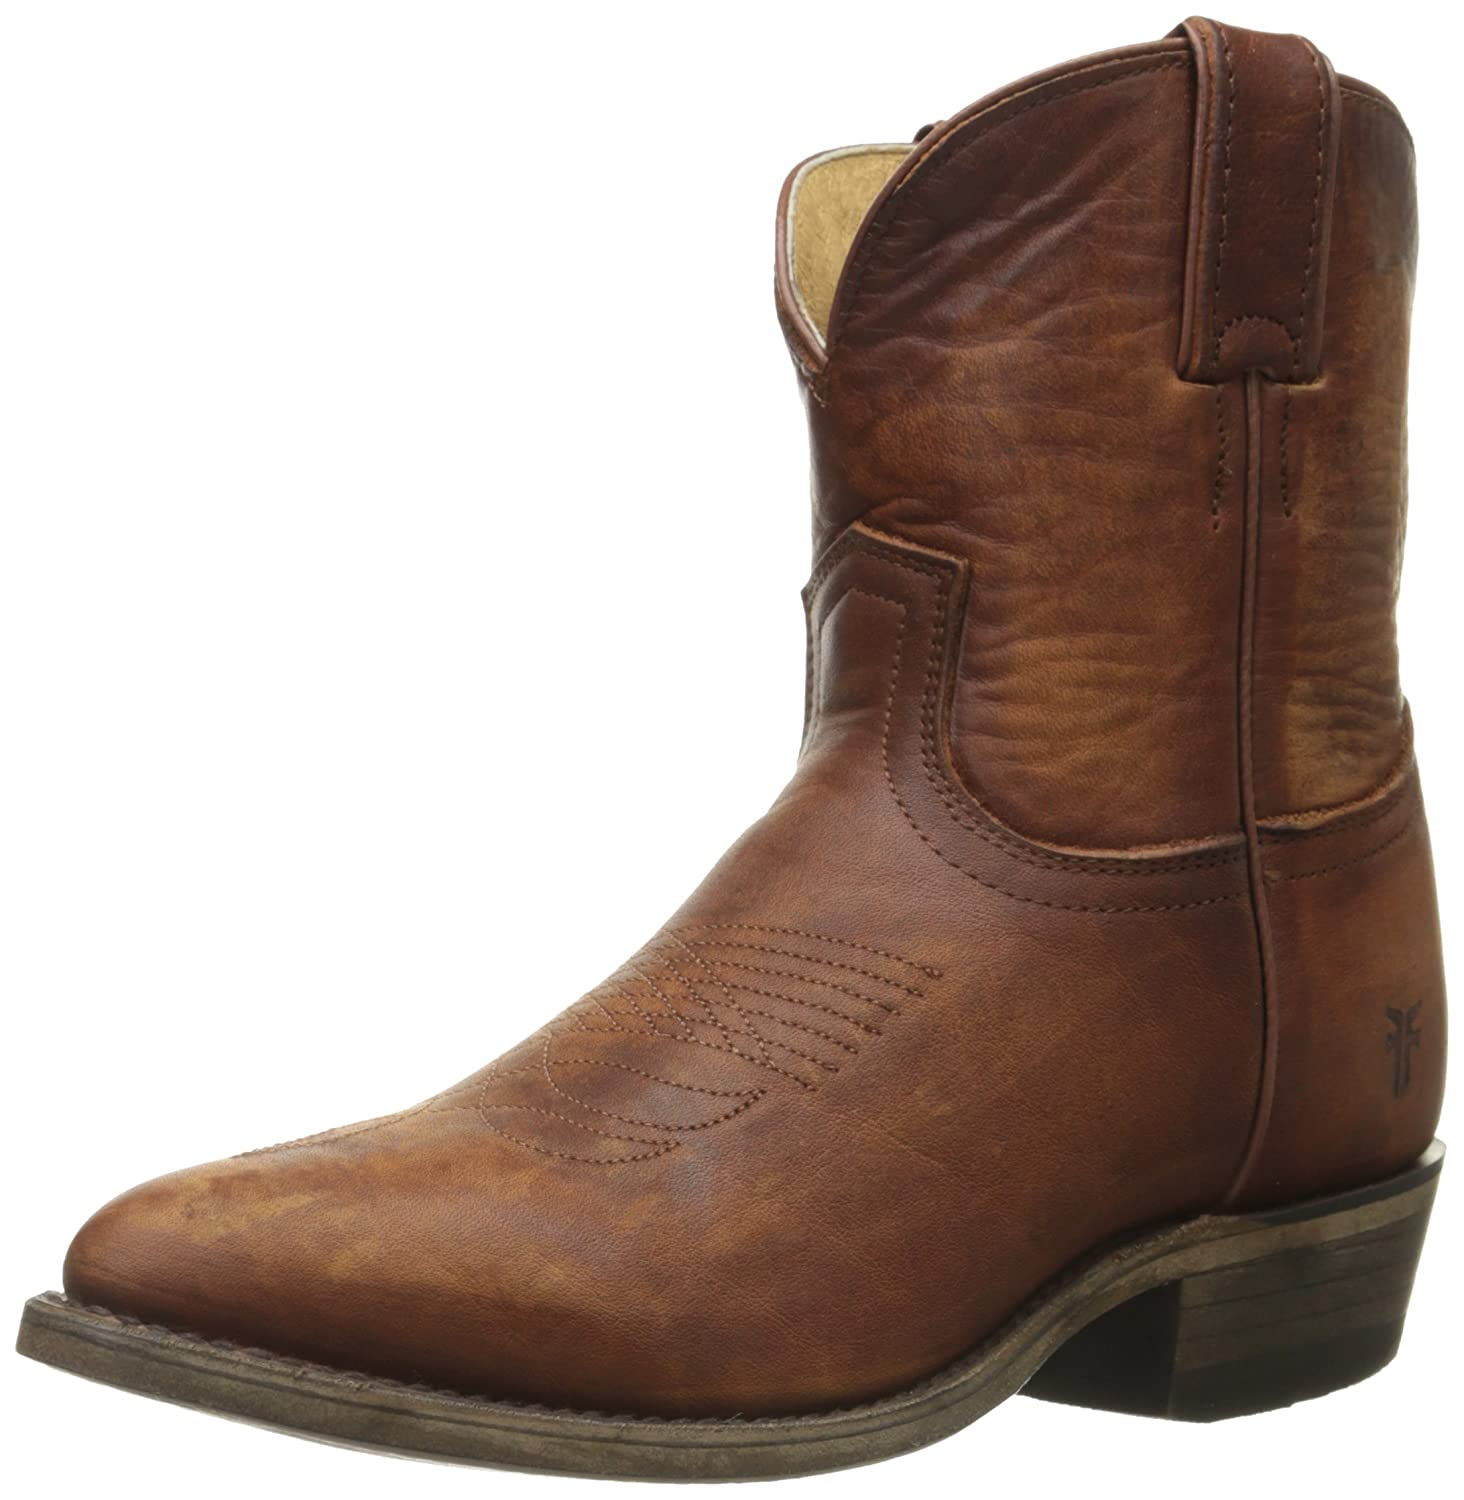 FRYE Women's Billy Short-Wshovn Western Boot B00R550SDW 8.5 B(M) US|Cognac